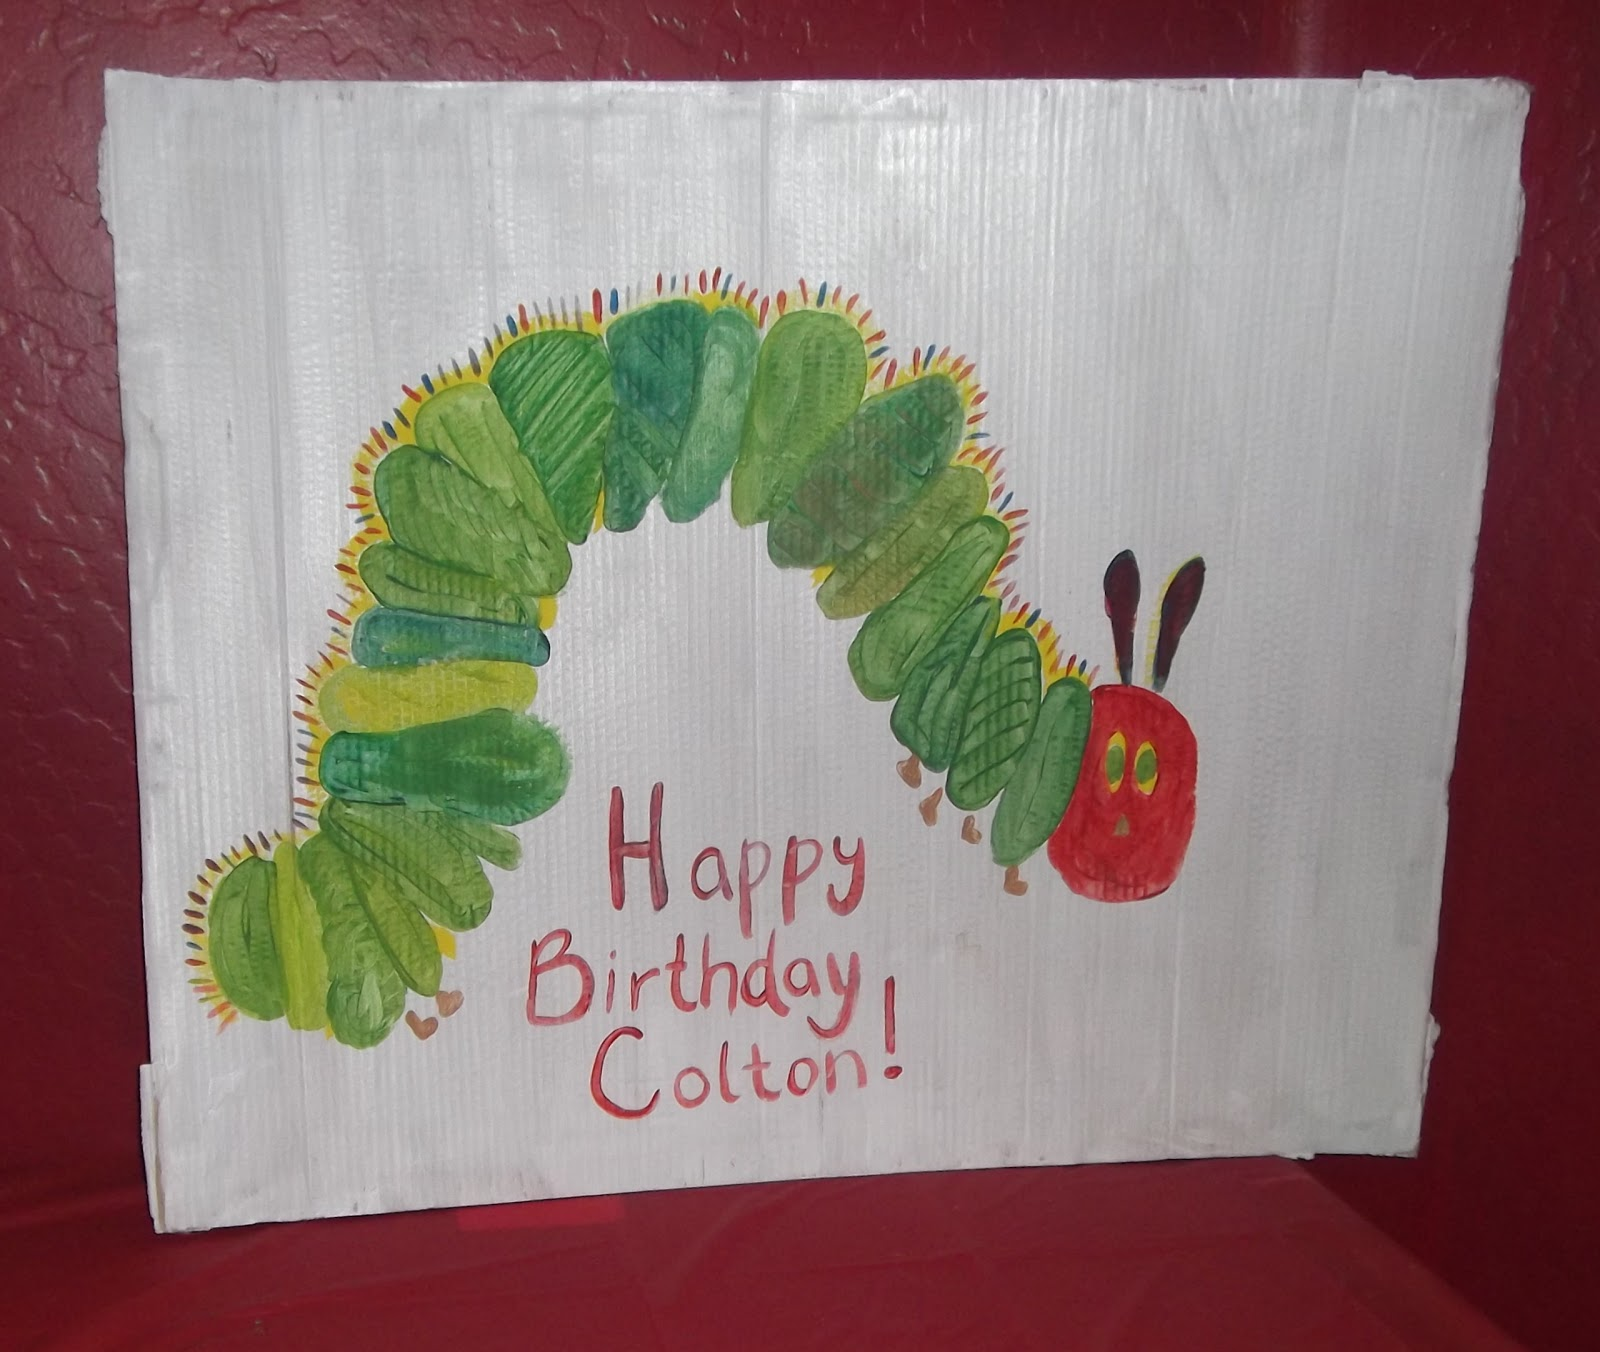 The Very Hungry Caterpillar Pages painted by Monica Jamer